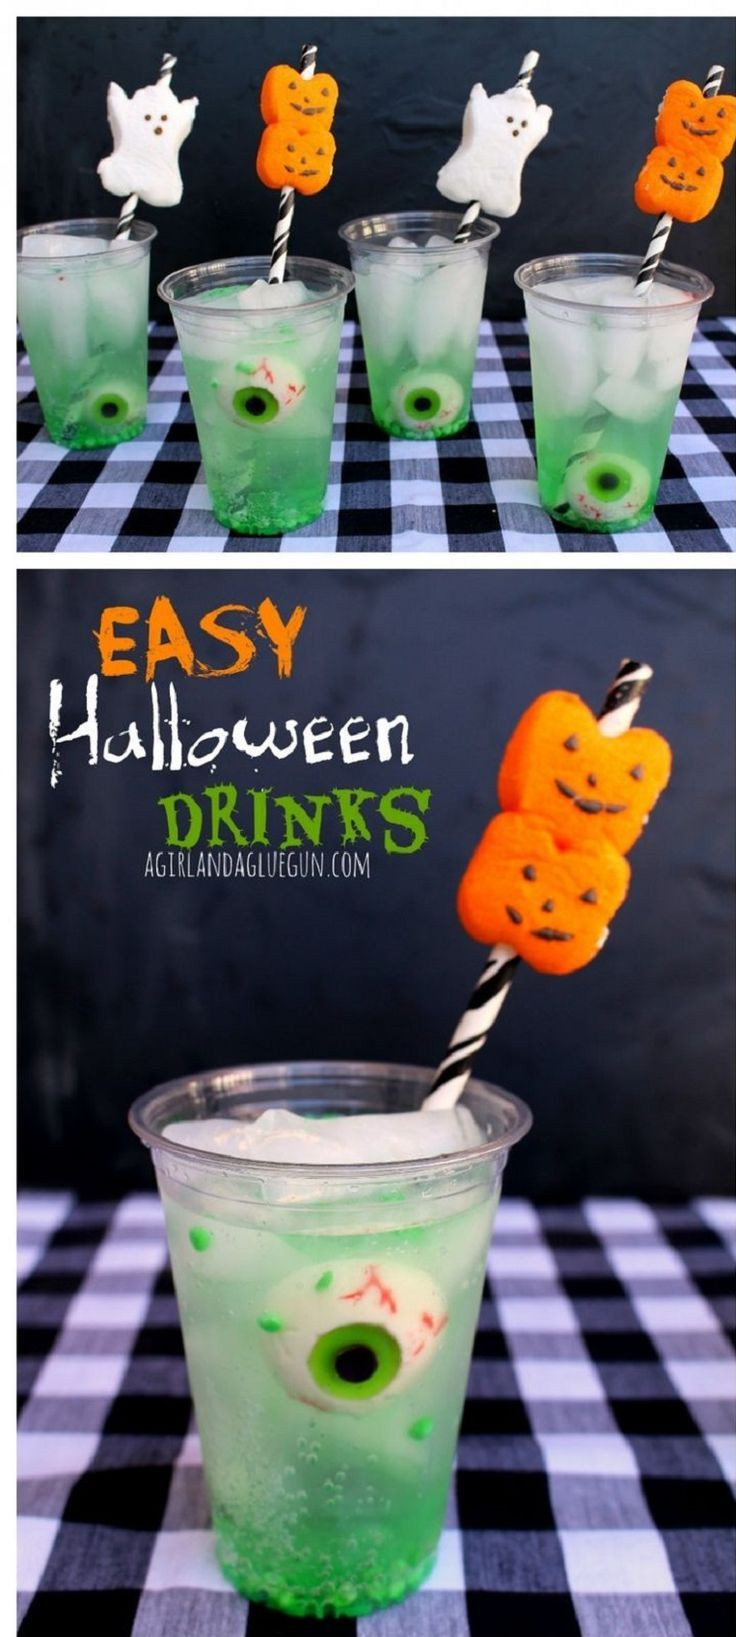 Easy Halloween Drinks Alcohol  1000 images about Halloween crafts and activitites on